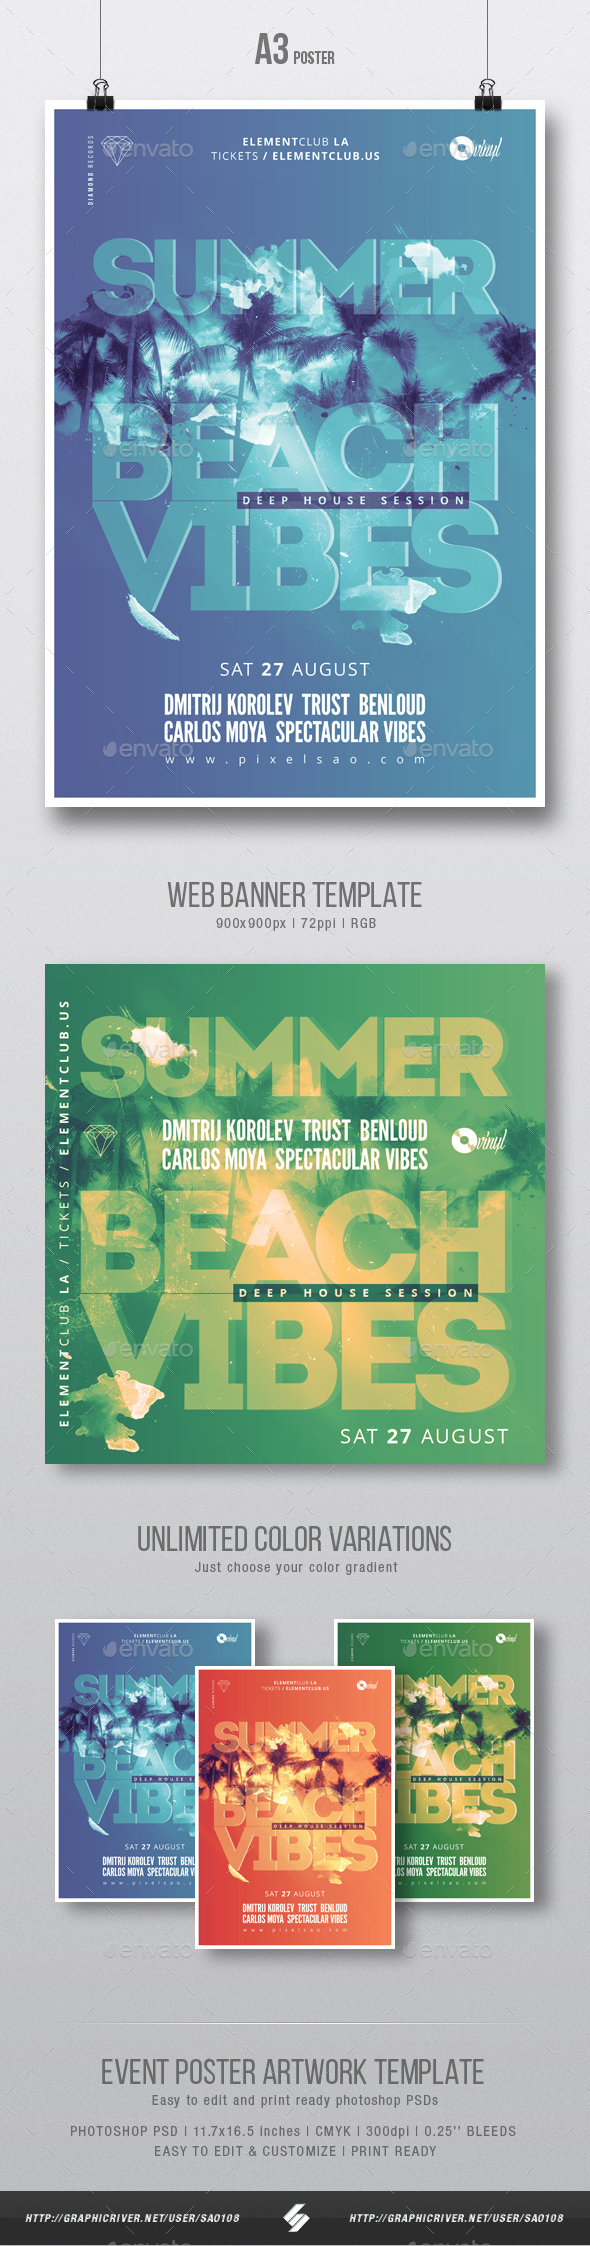 Summer Beach Vibes - House Music Flyer / Poster Template A3 - Clubs & Parties Events